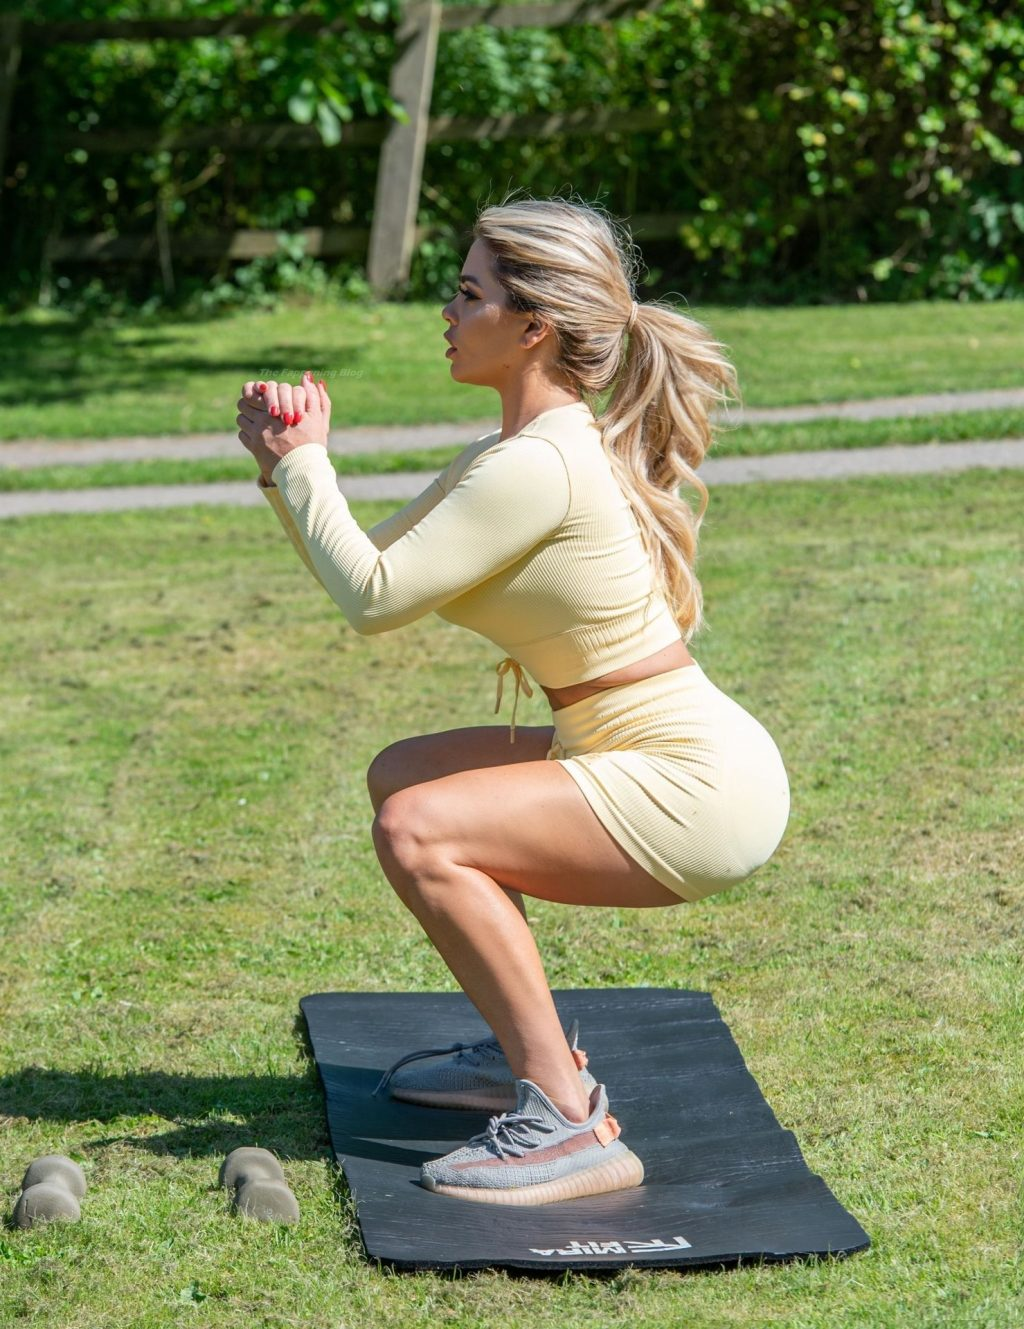 Bianca Gascoigne Shows Off Her Amazing Figure During a Workout Session (10 Photos)